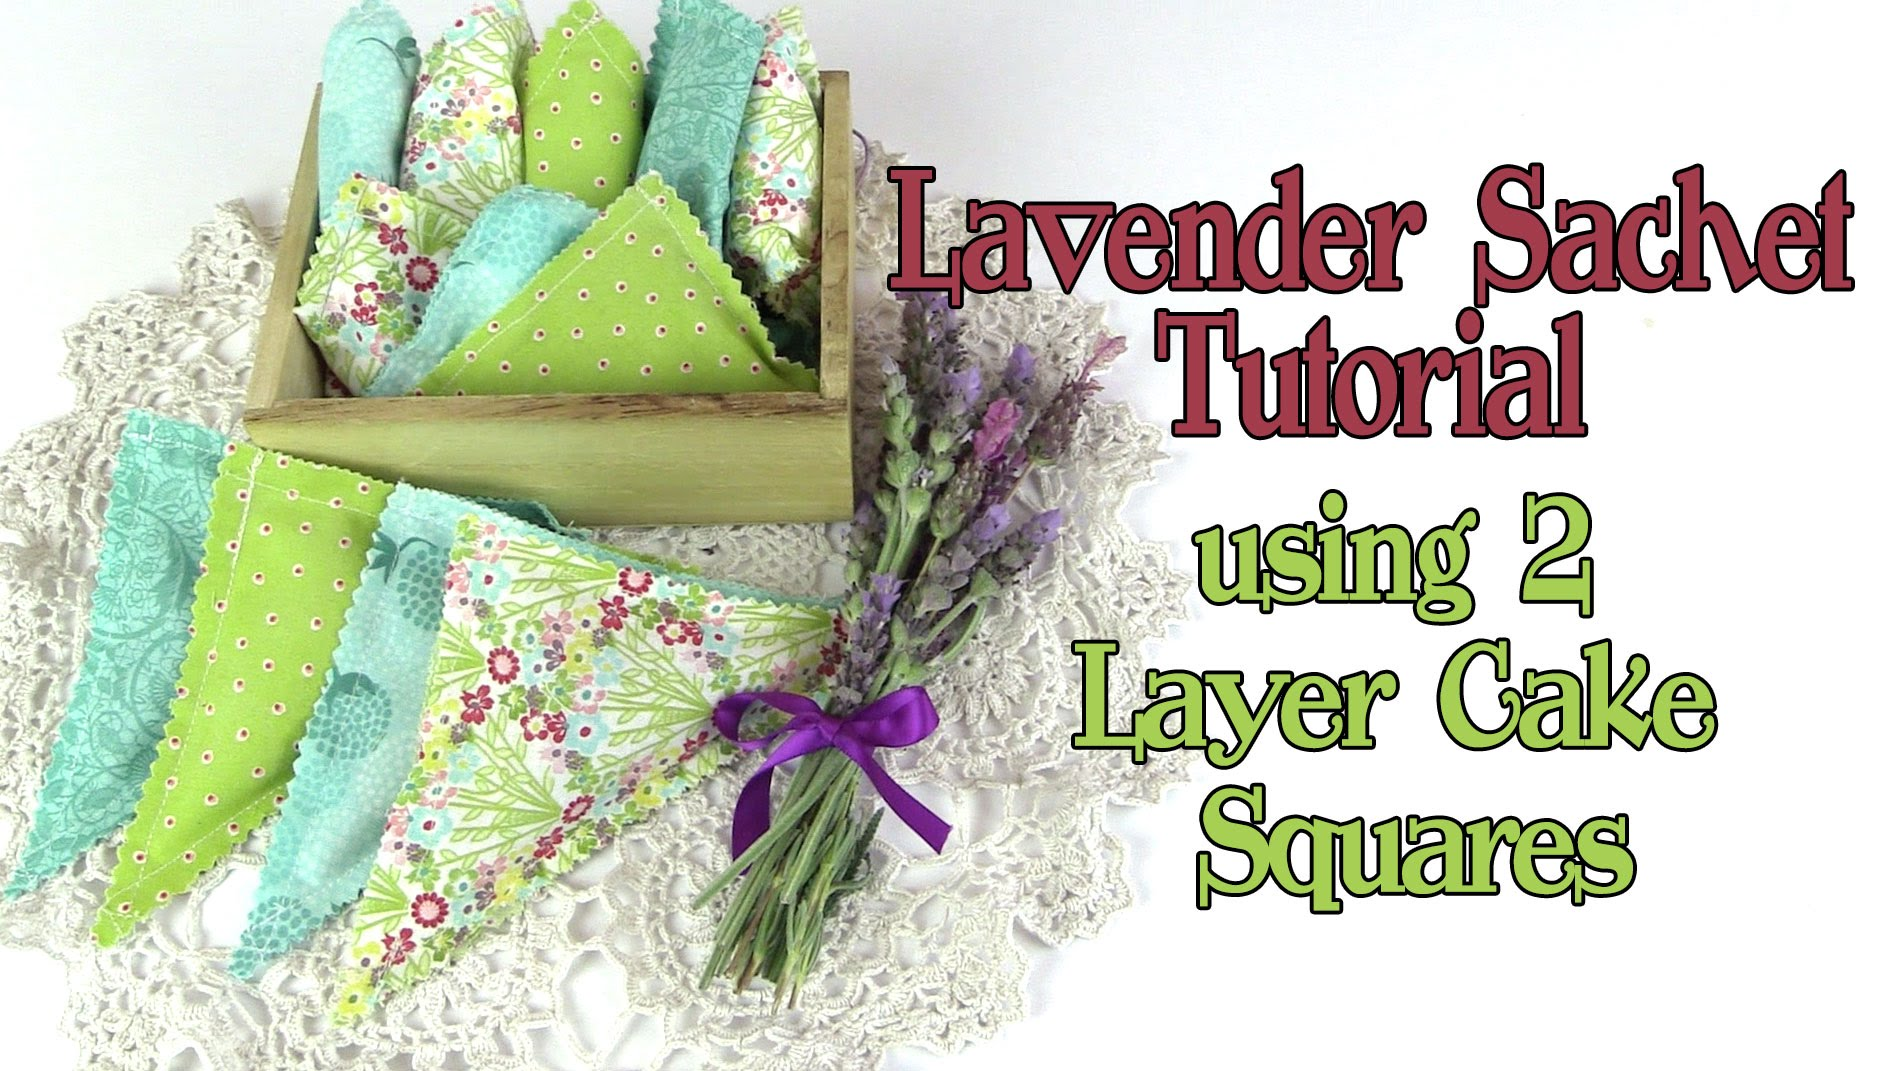 How to make Lavender Sachets using 2 Layer Cake Squares